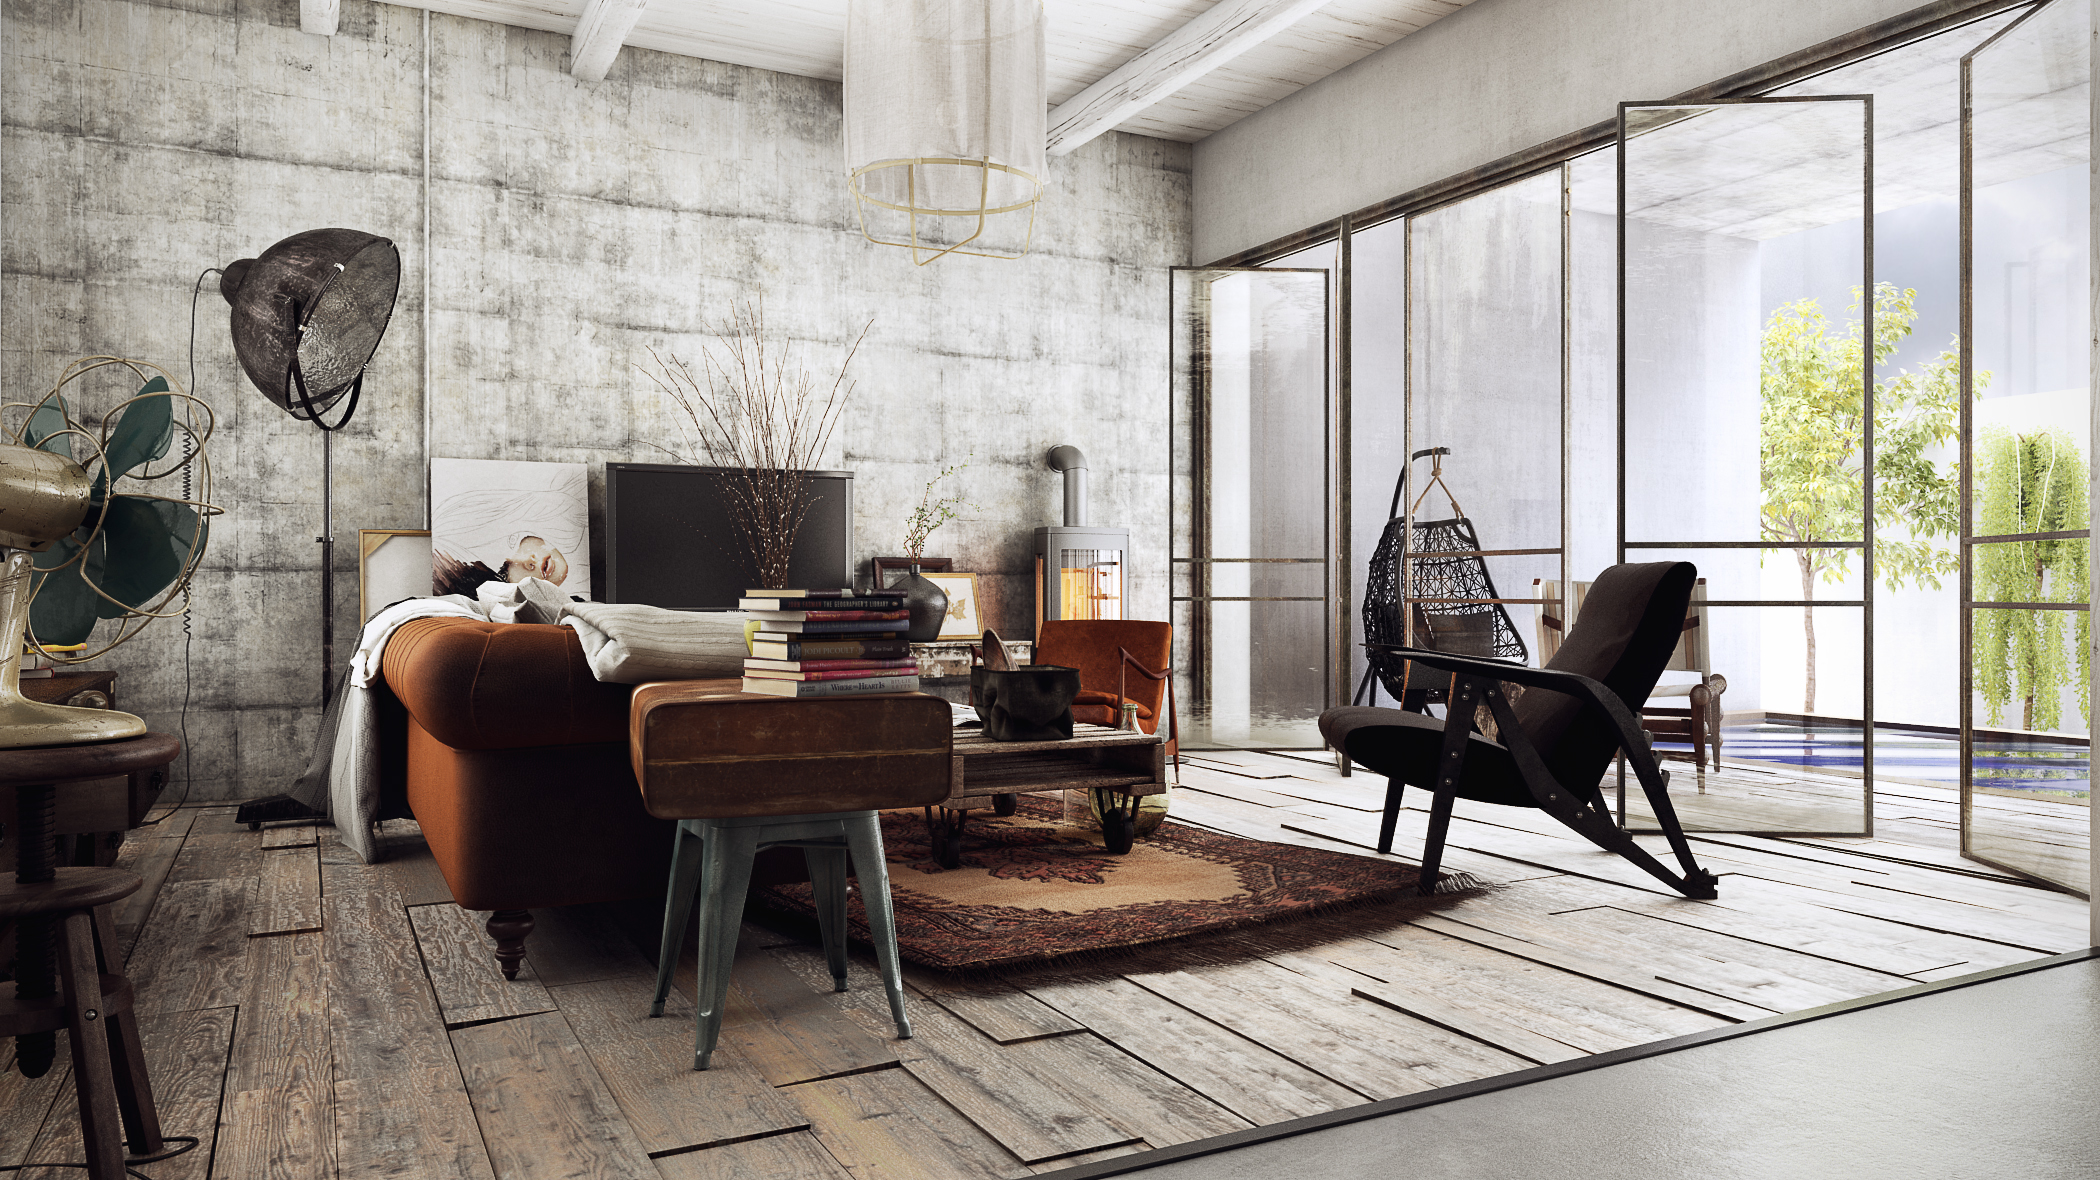 Vintage - Industrial house! on Behance